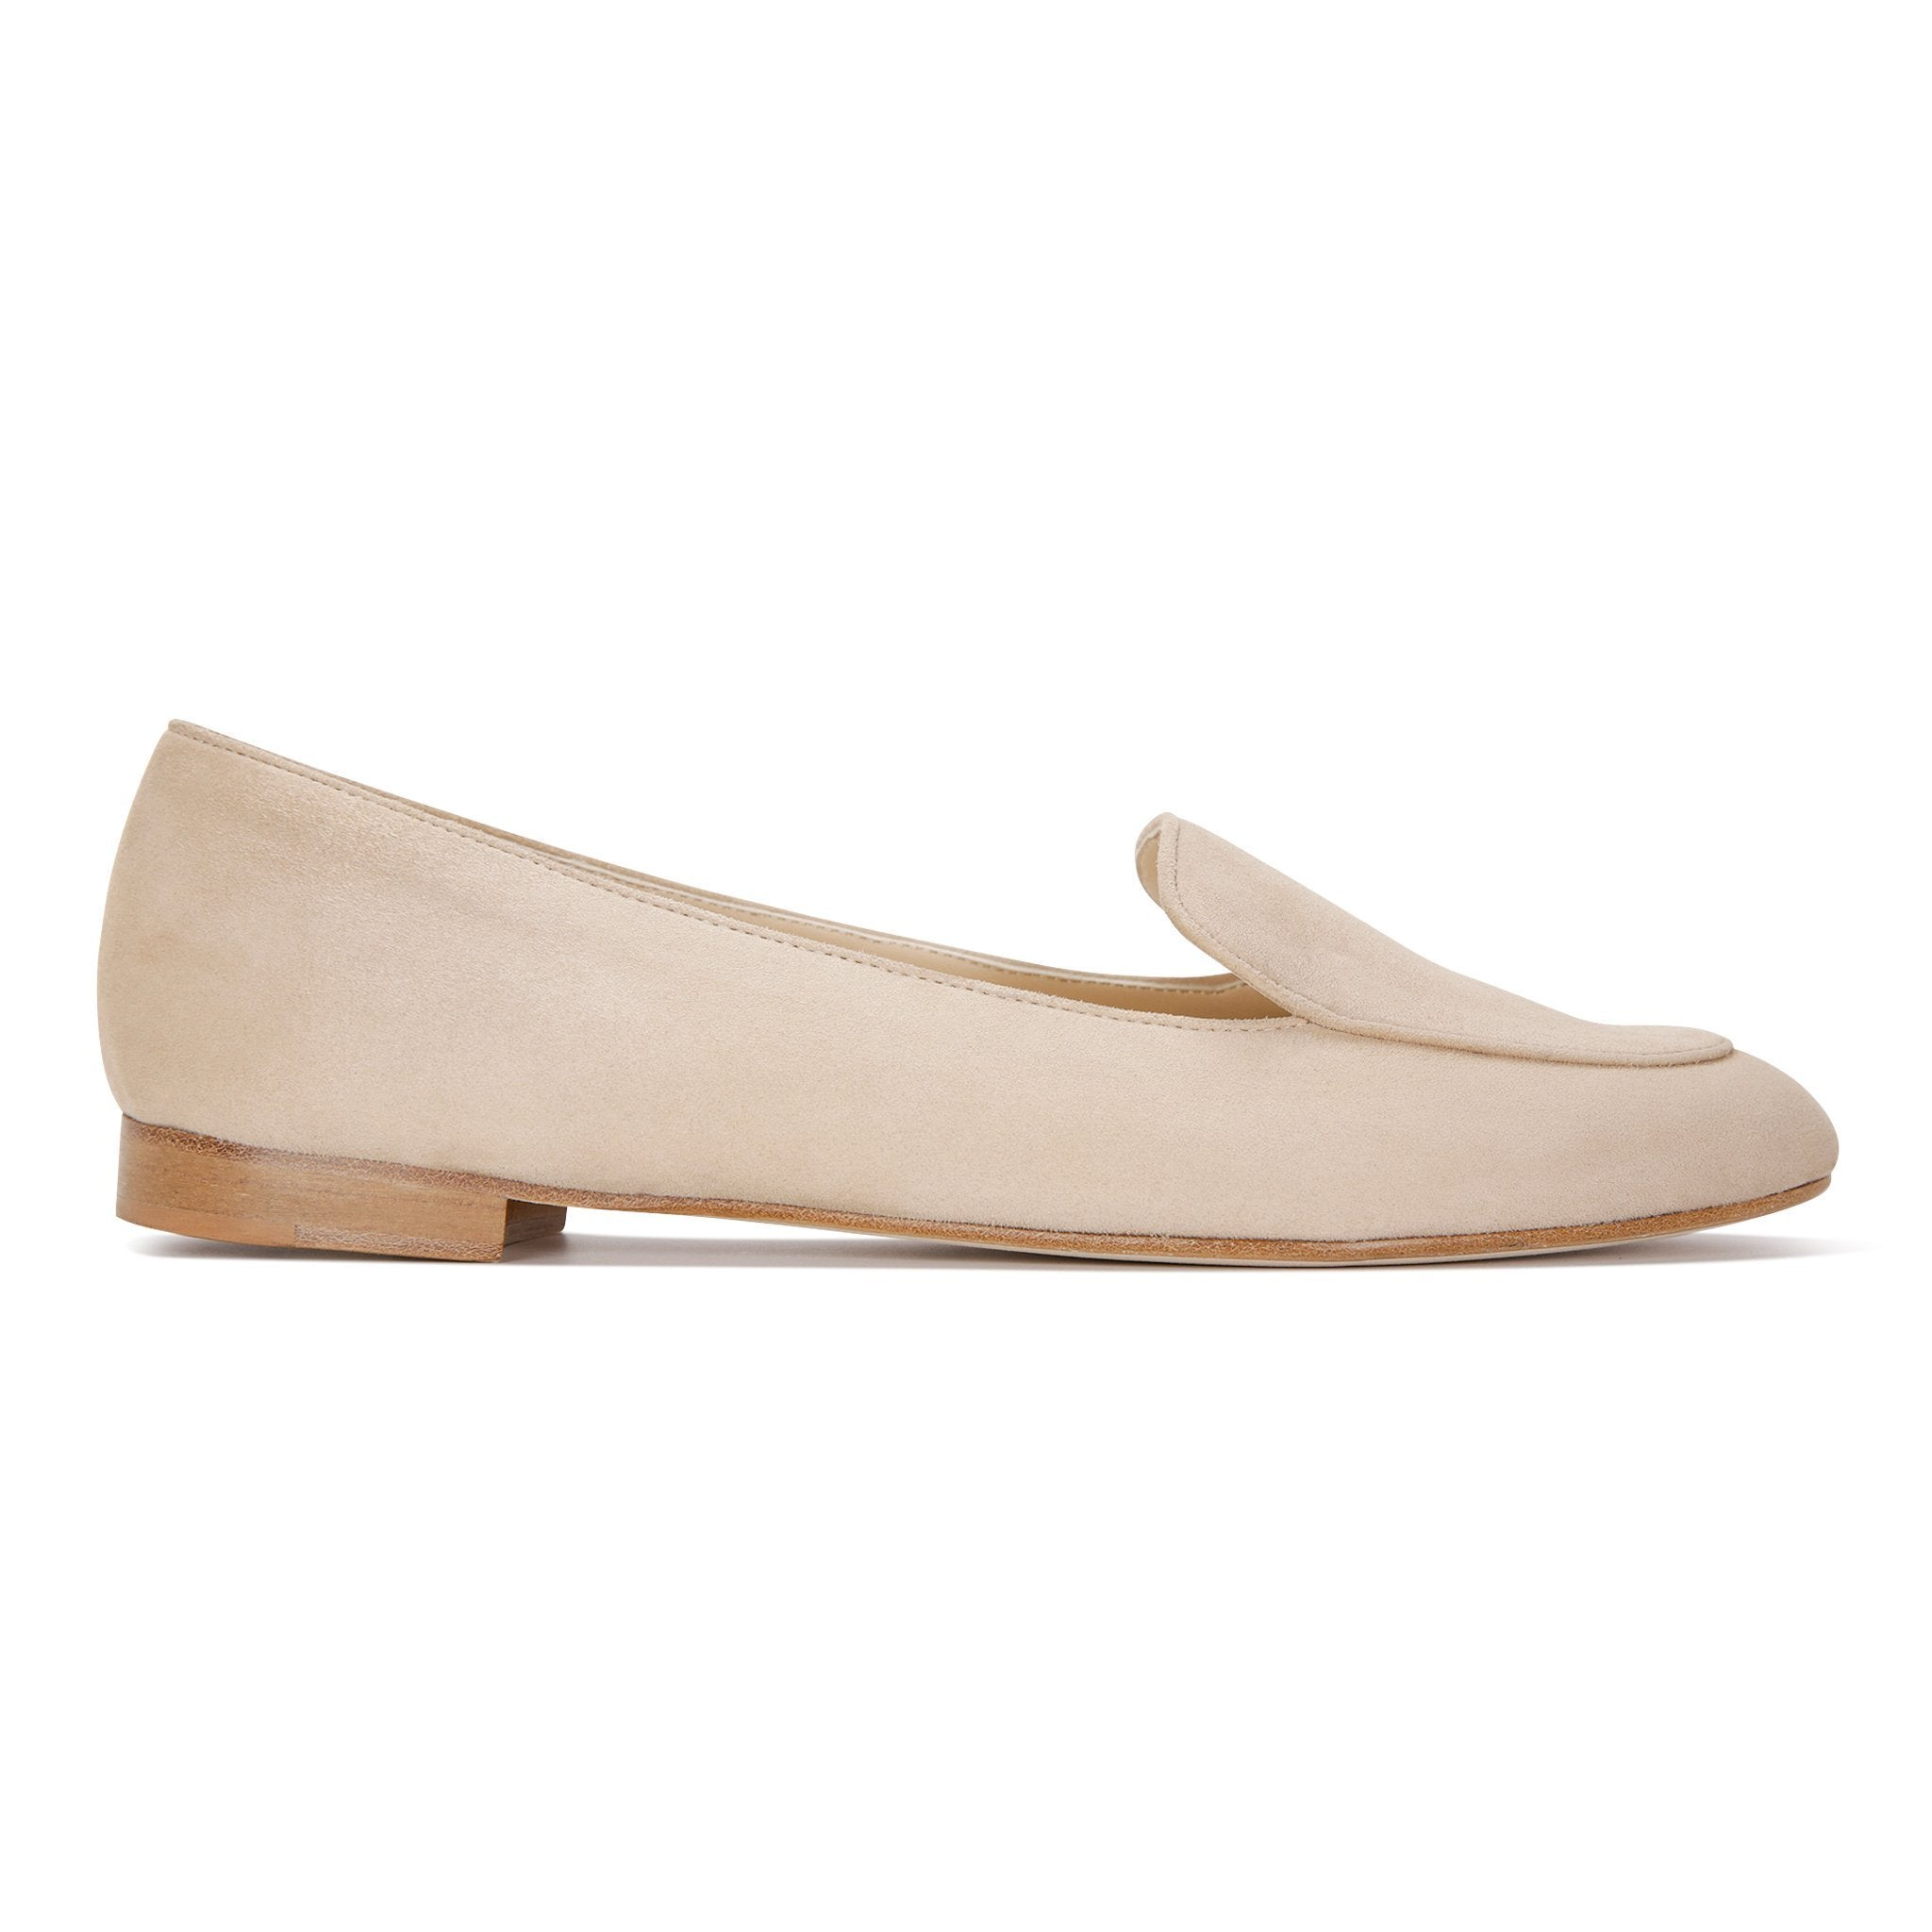 REGGIO - Velukid Tan, VIAJIYU - Women's Hand Made Sustainable Luxury Shoes. Made in Italy. Made to Order.